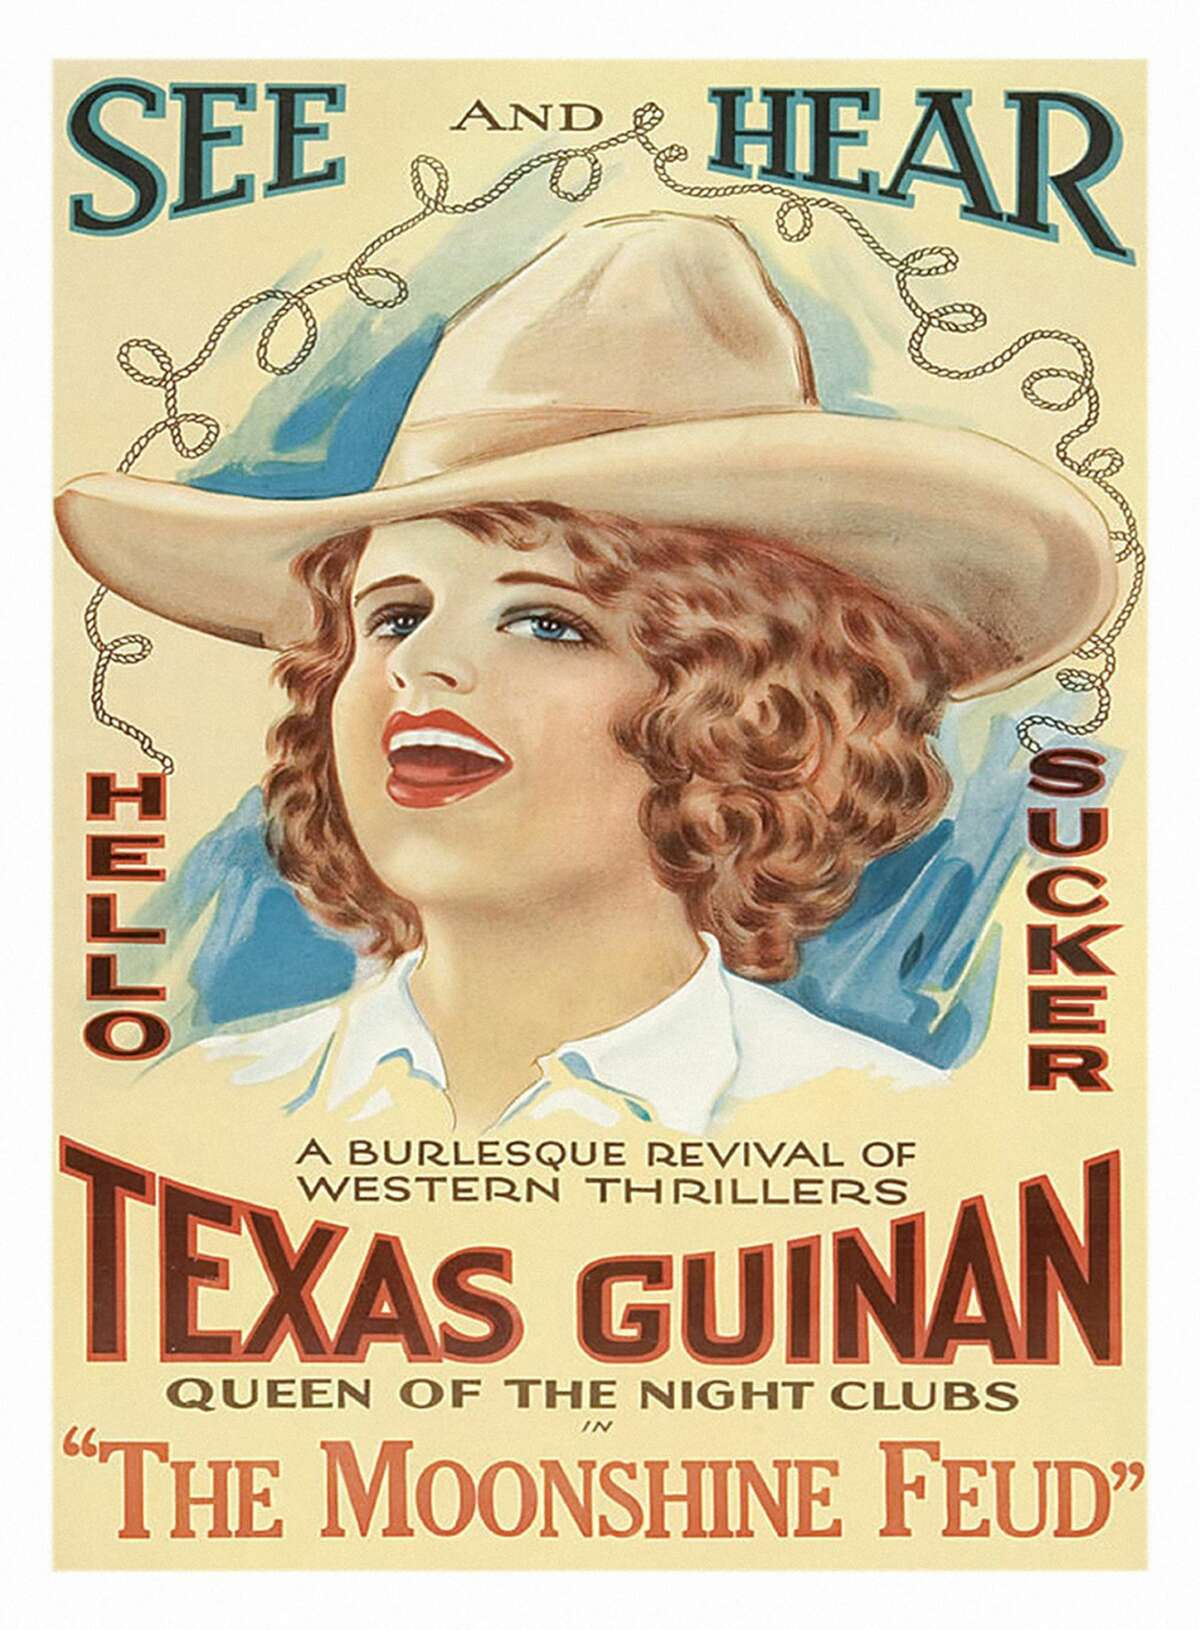 1920:  Texas Guinan Western on a poster that advertises the movie